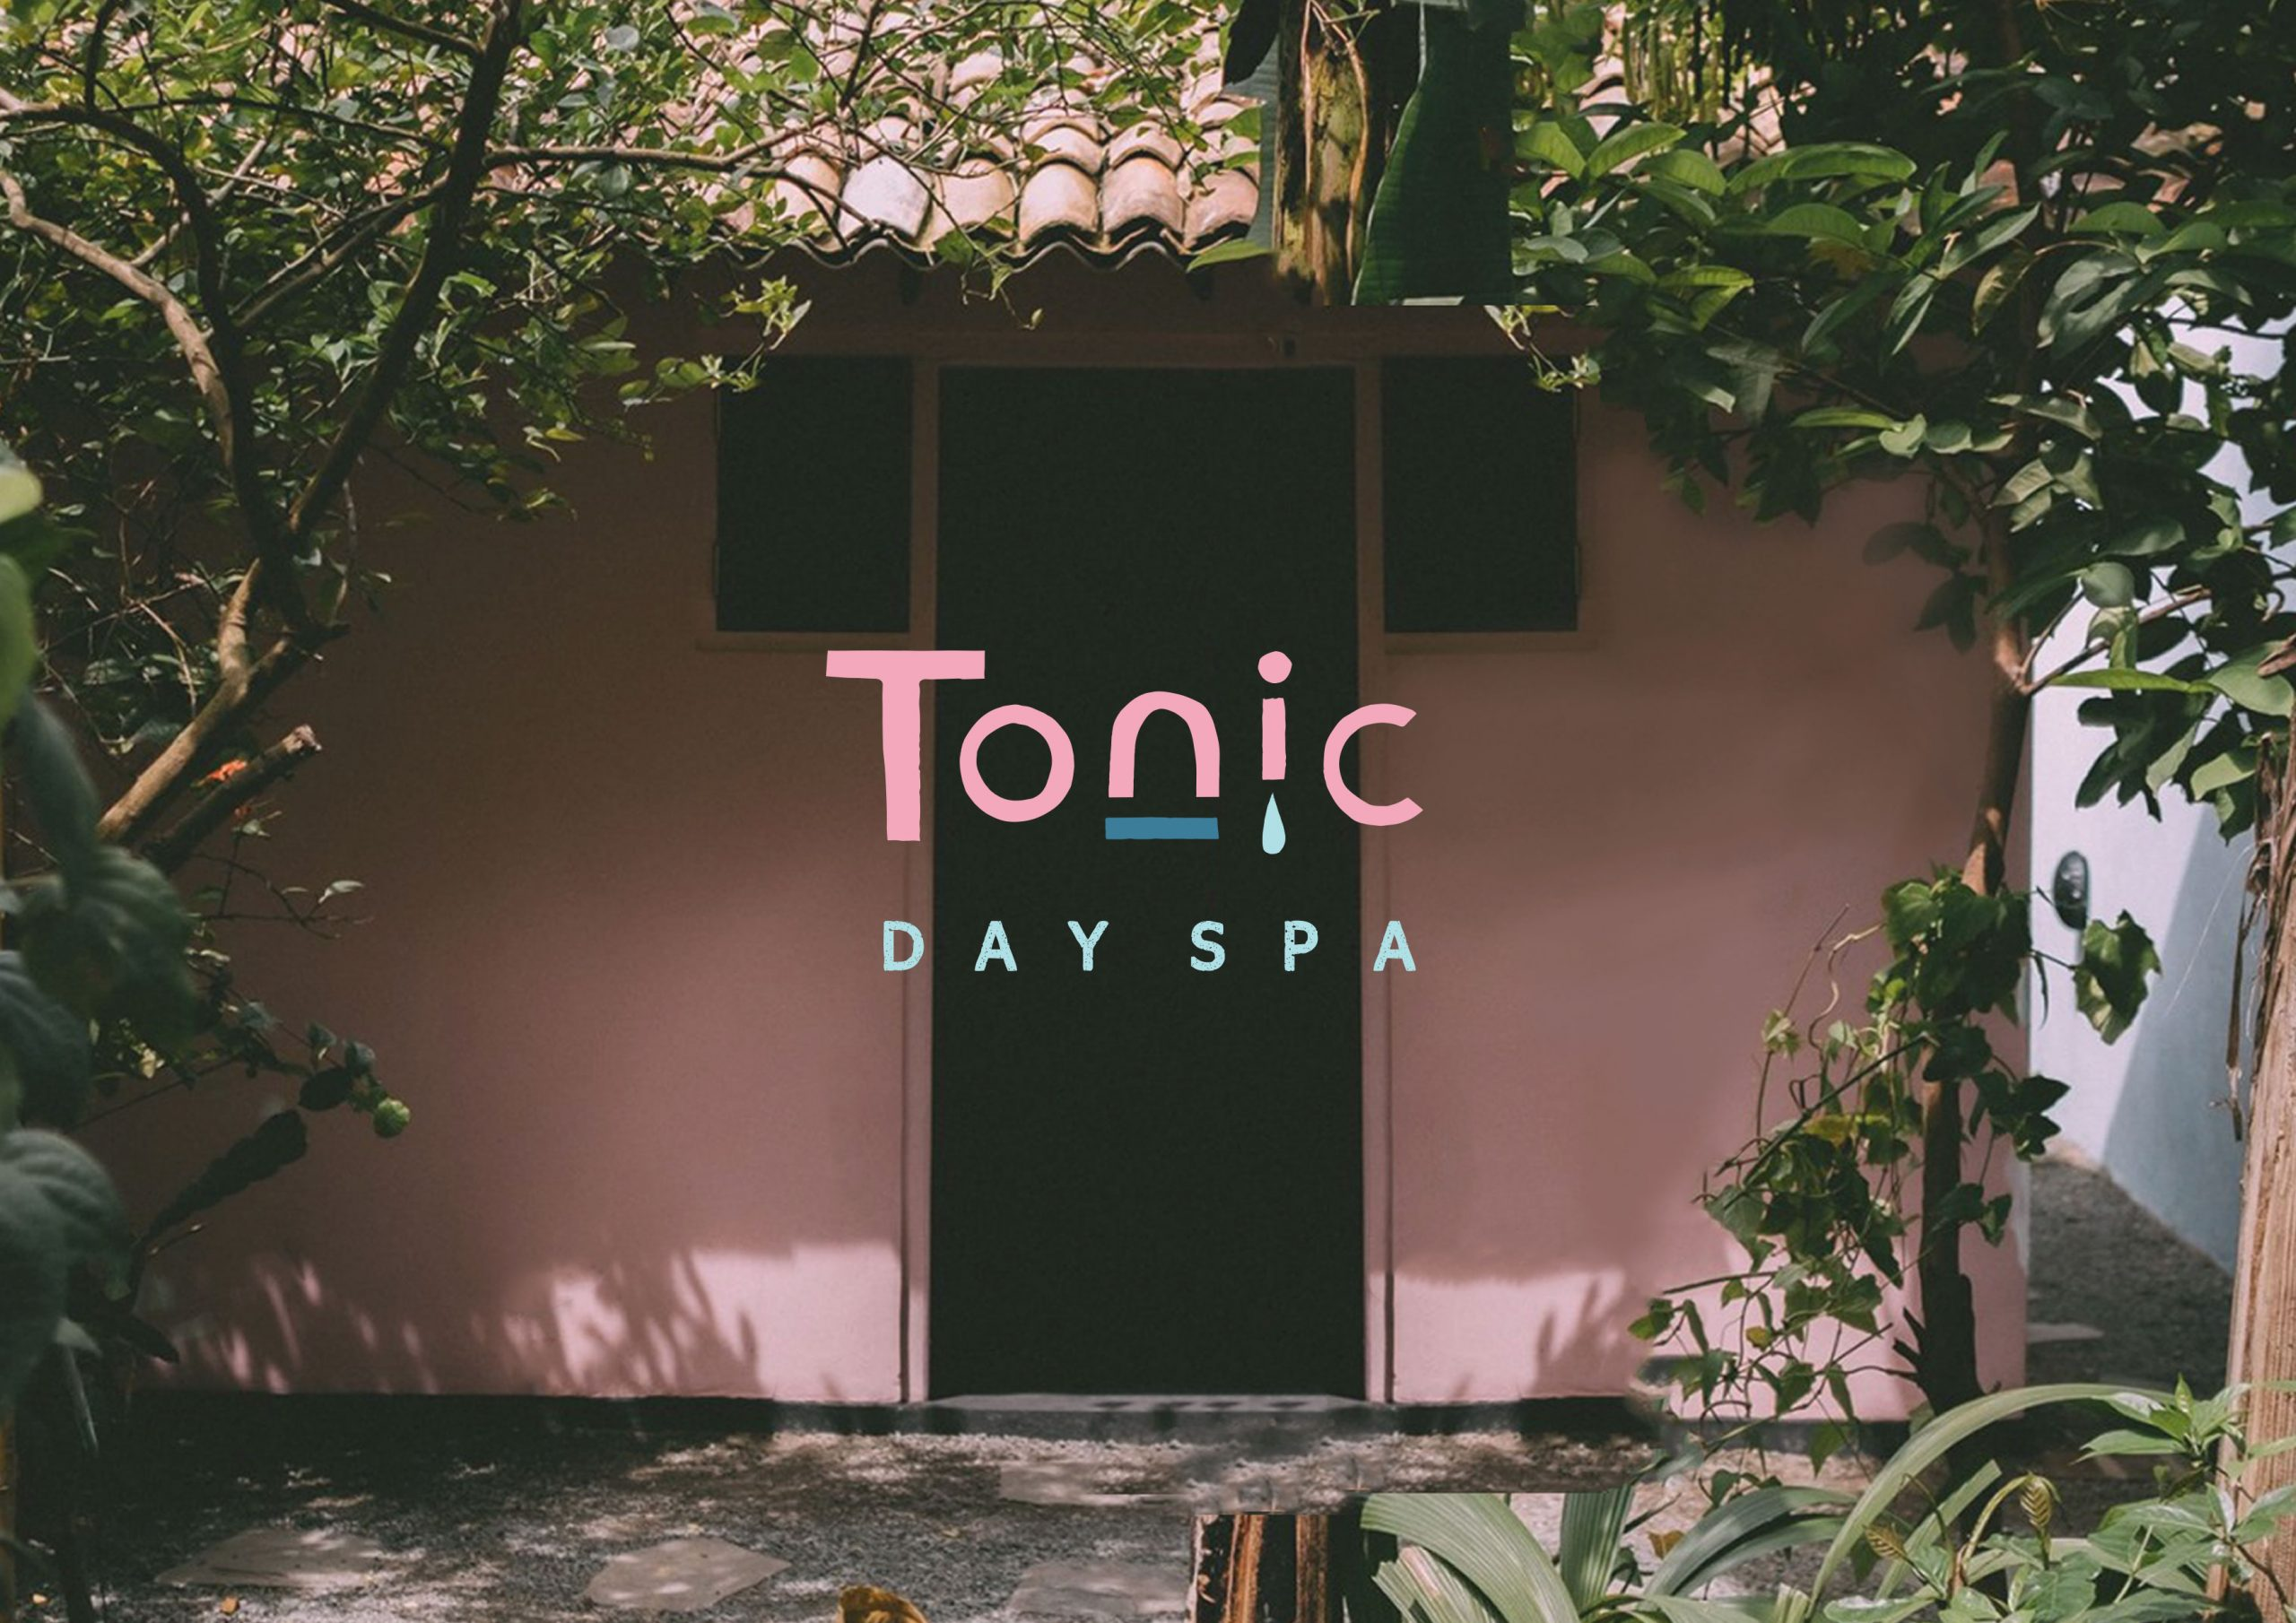 Tonic Day Spa title